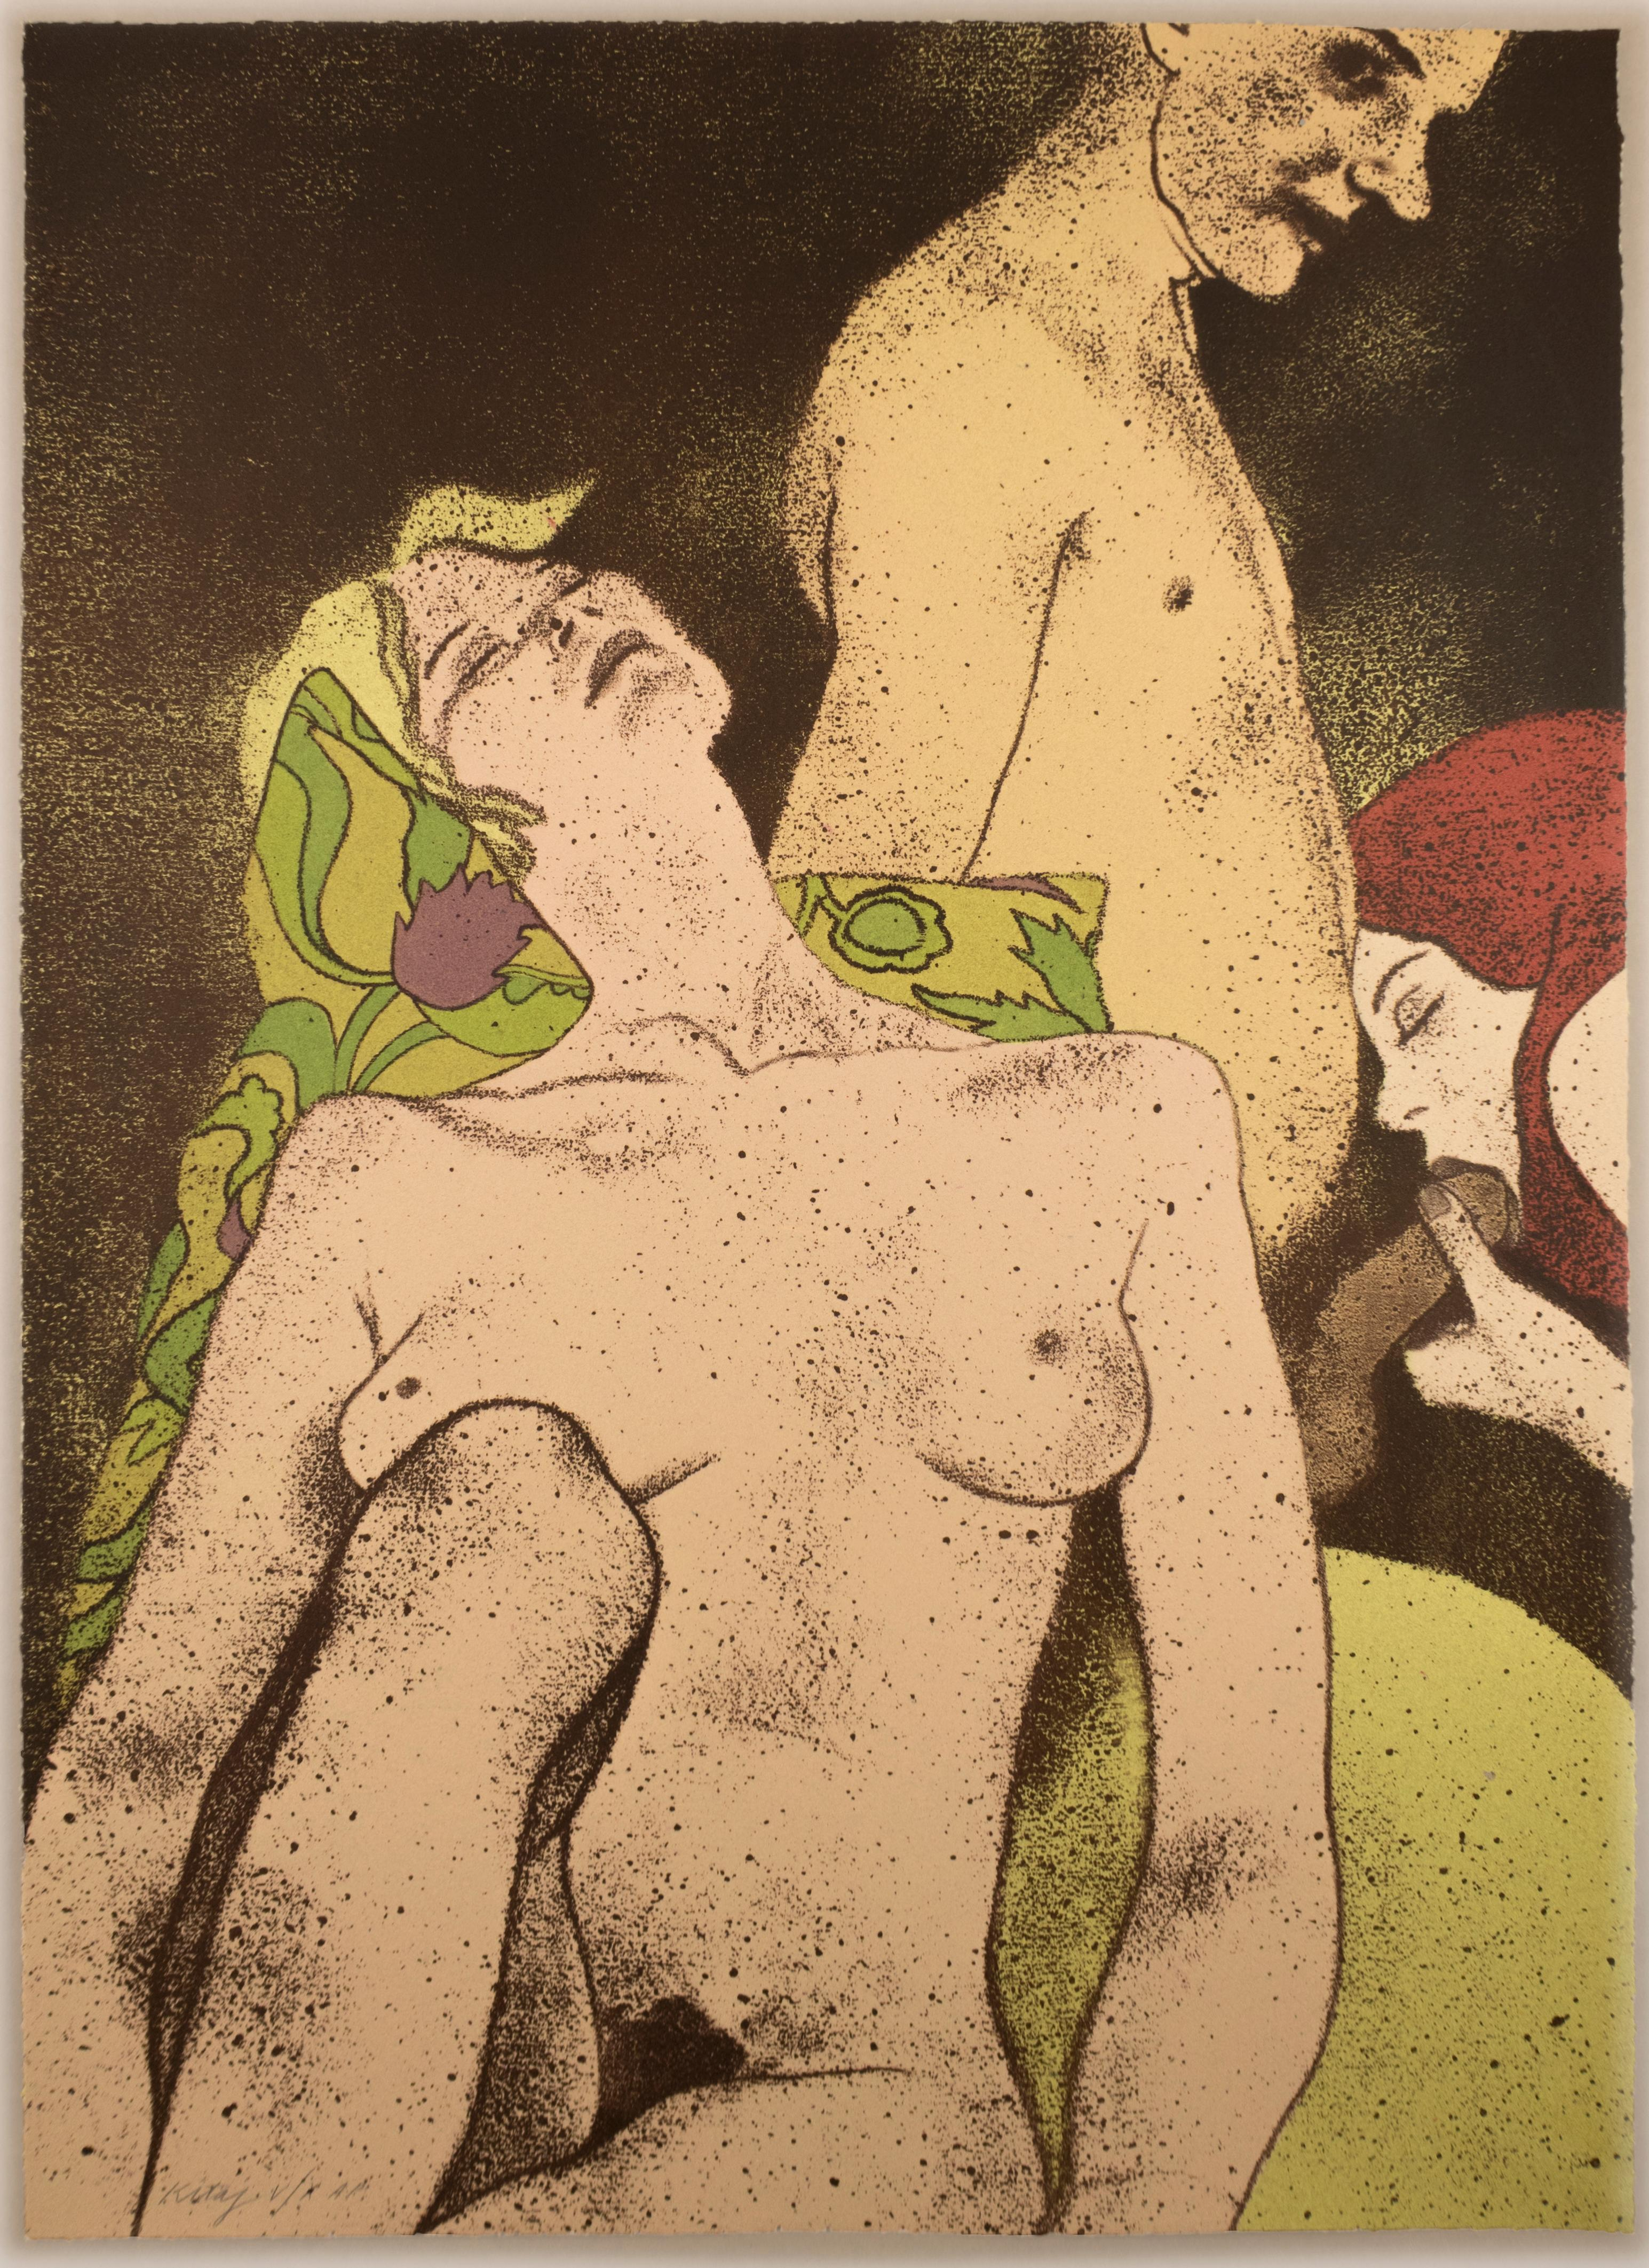 A Rash Act: erotic drawing of nude blonde, redhead, and man with art deco motifs